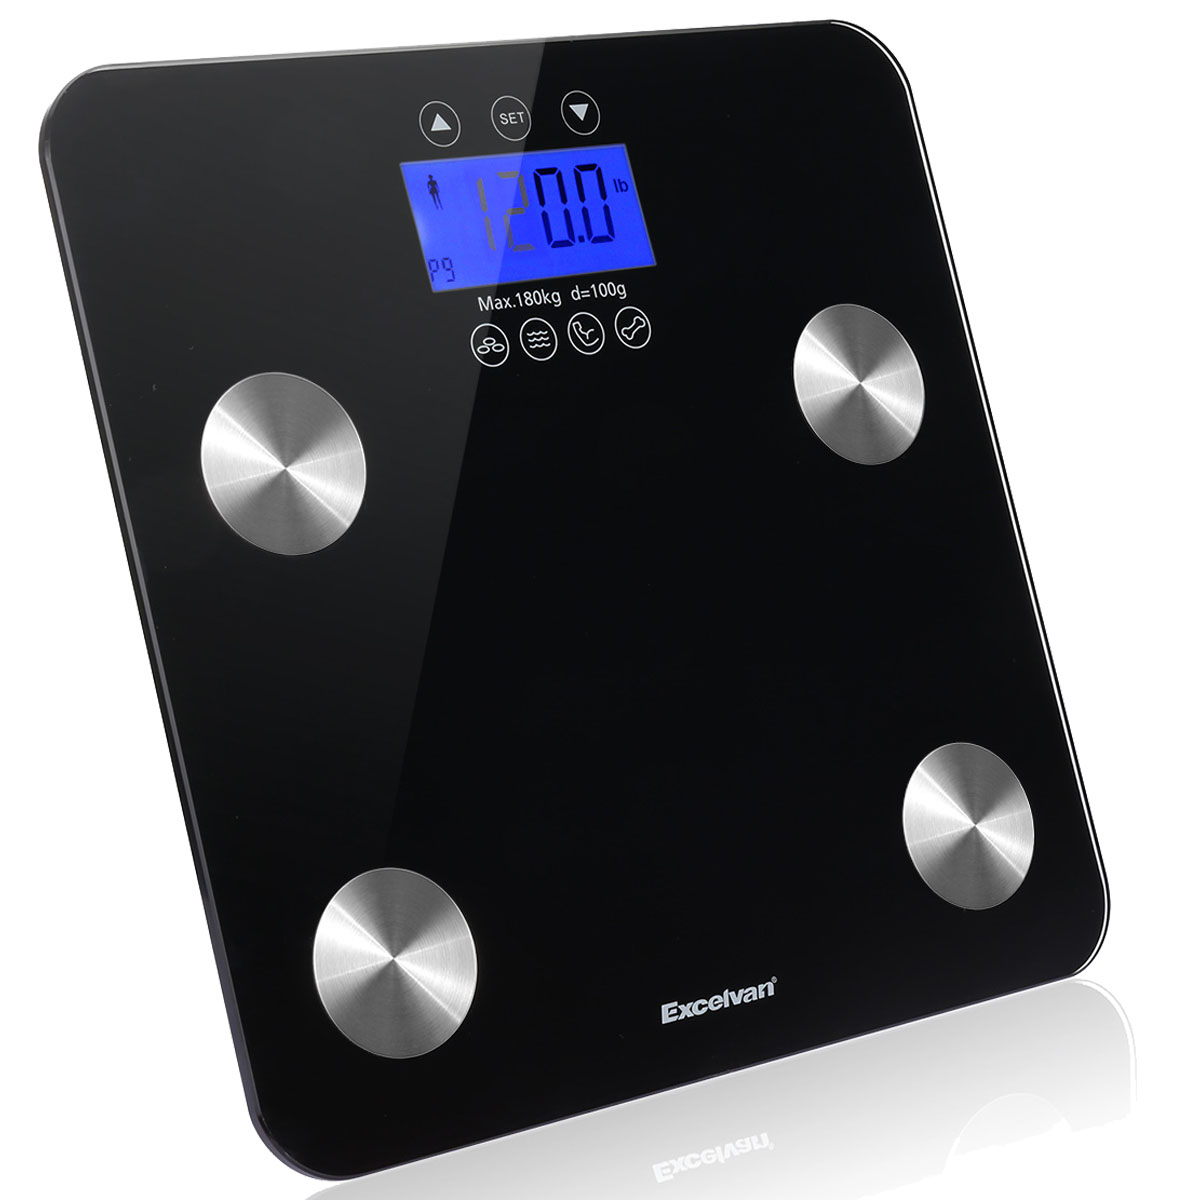 Excelvan Body Fat Scale, Smart Weight Scale 400 lbs with BMI Body Fat Composition Analyzer, Large Display, Smart Bathroom Wireless Weight Scale Work with iOS and Android